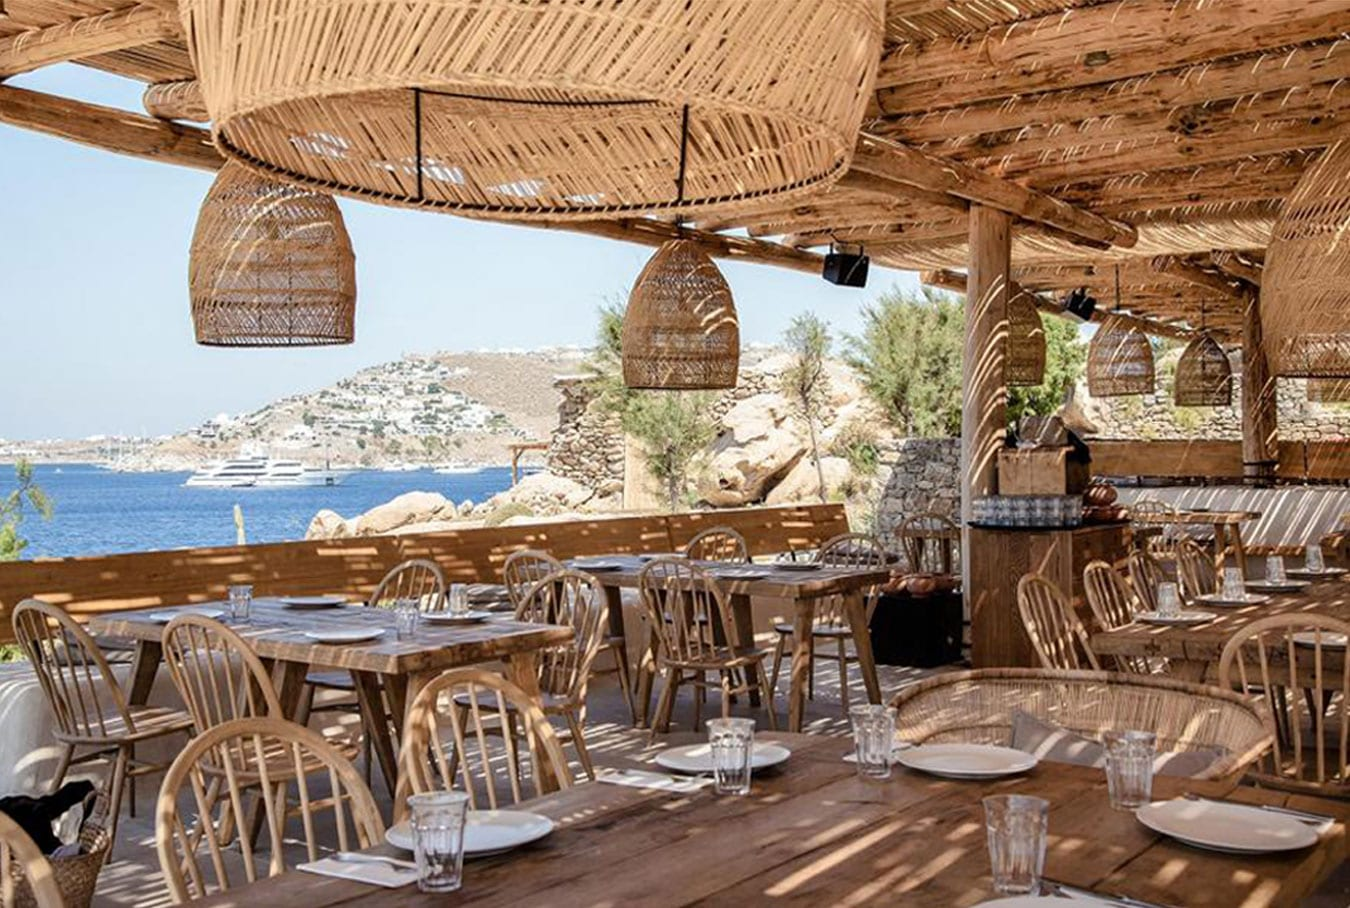 a boho-chic beach restaurant in Mykonos